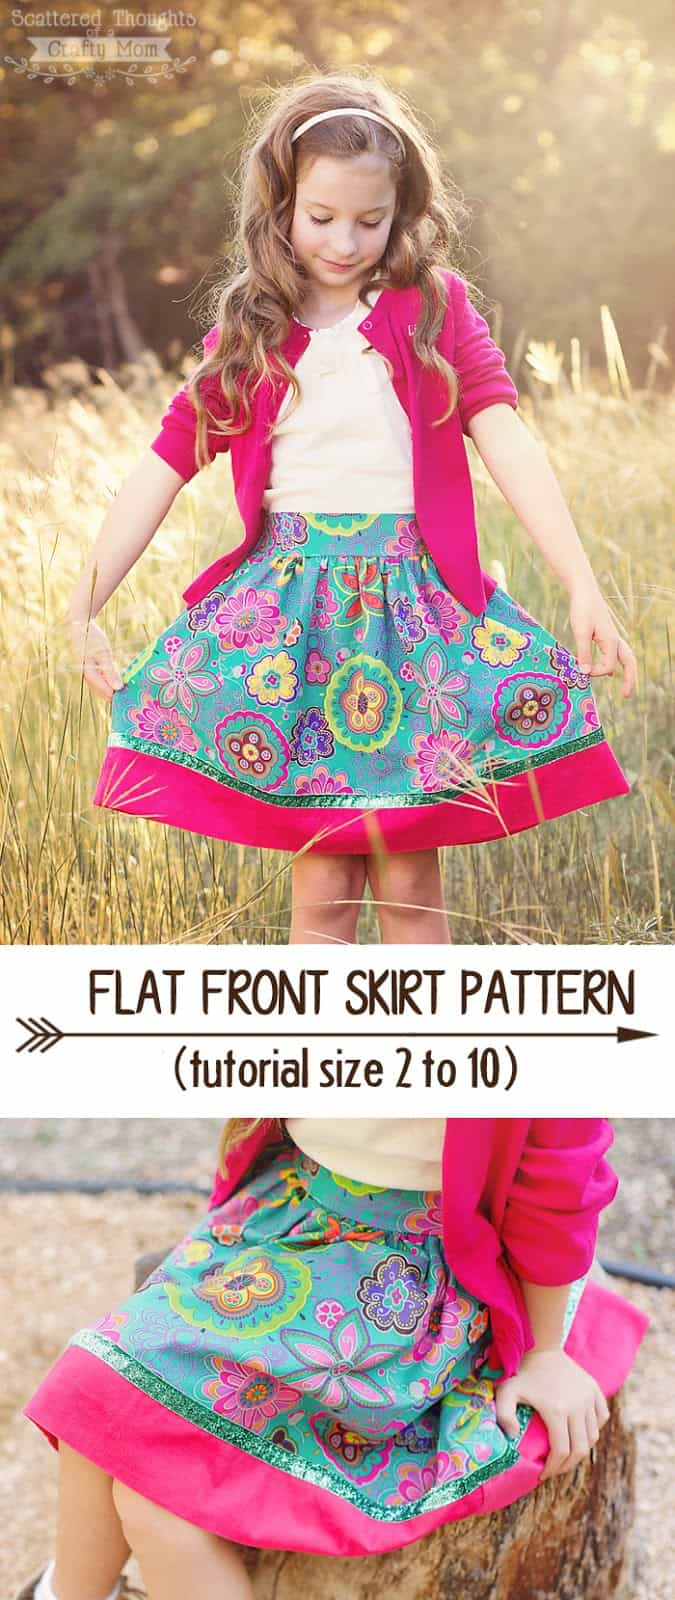 Free Flat Front Skirt Pattern for Girls